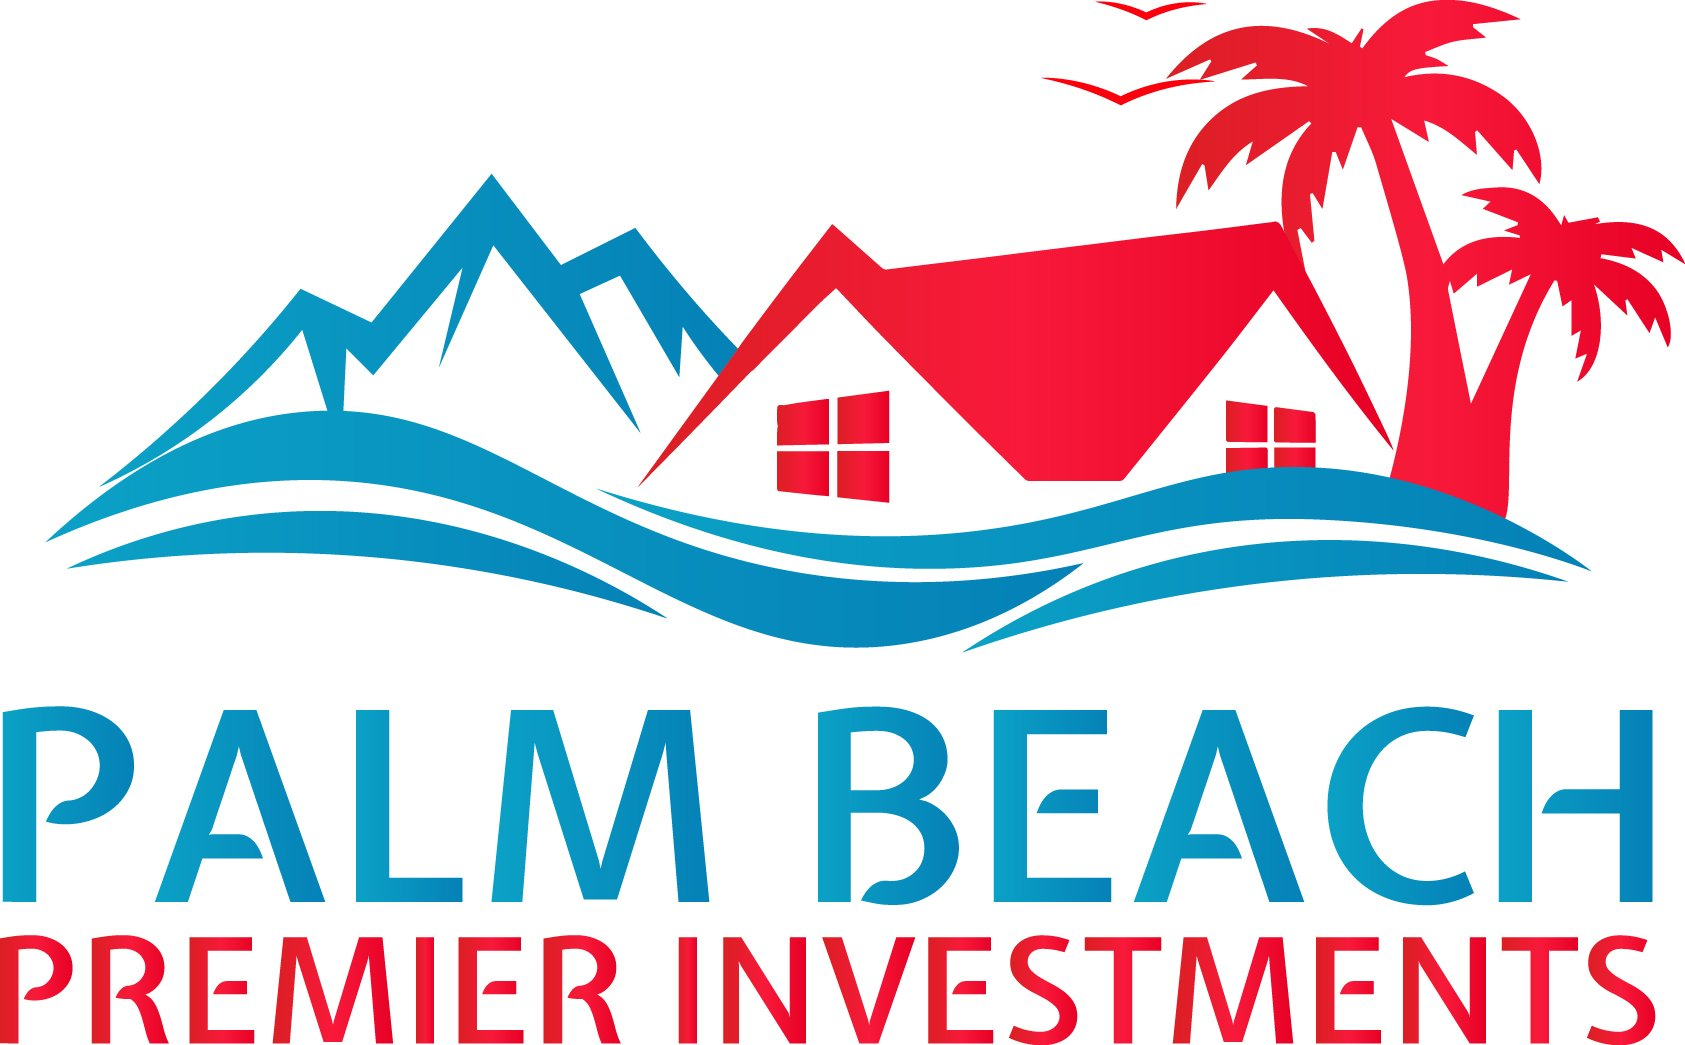 Palm Beach Premier Investments logo